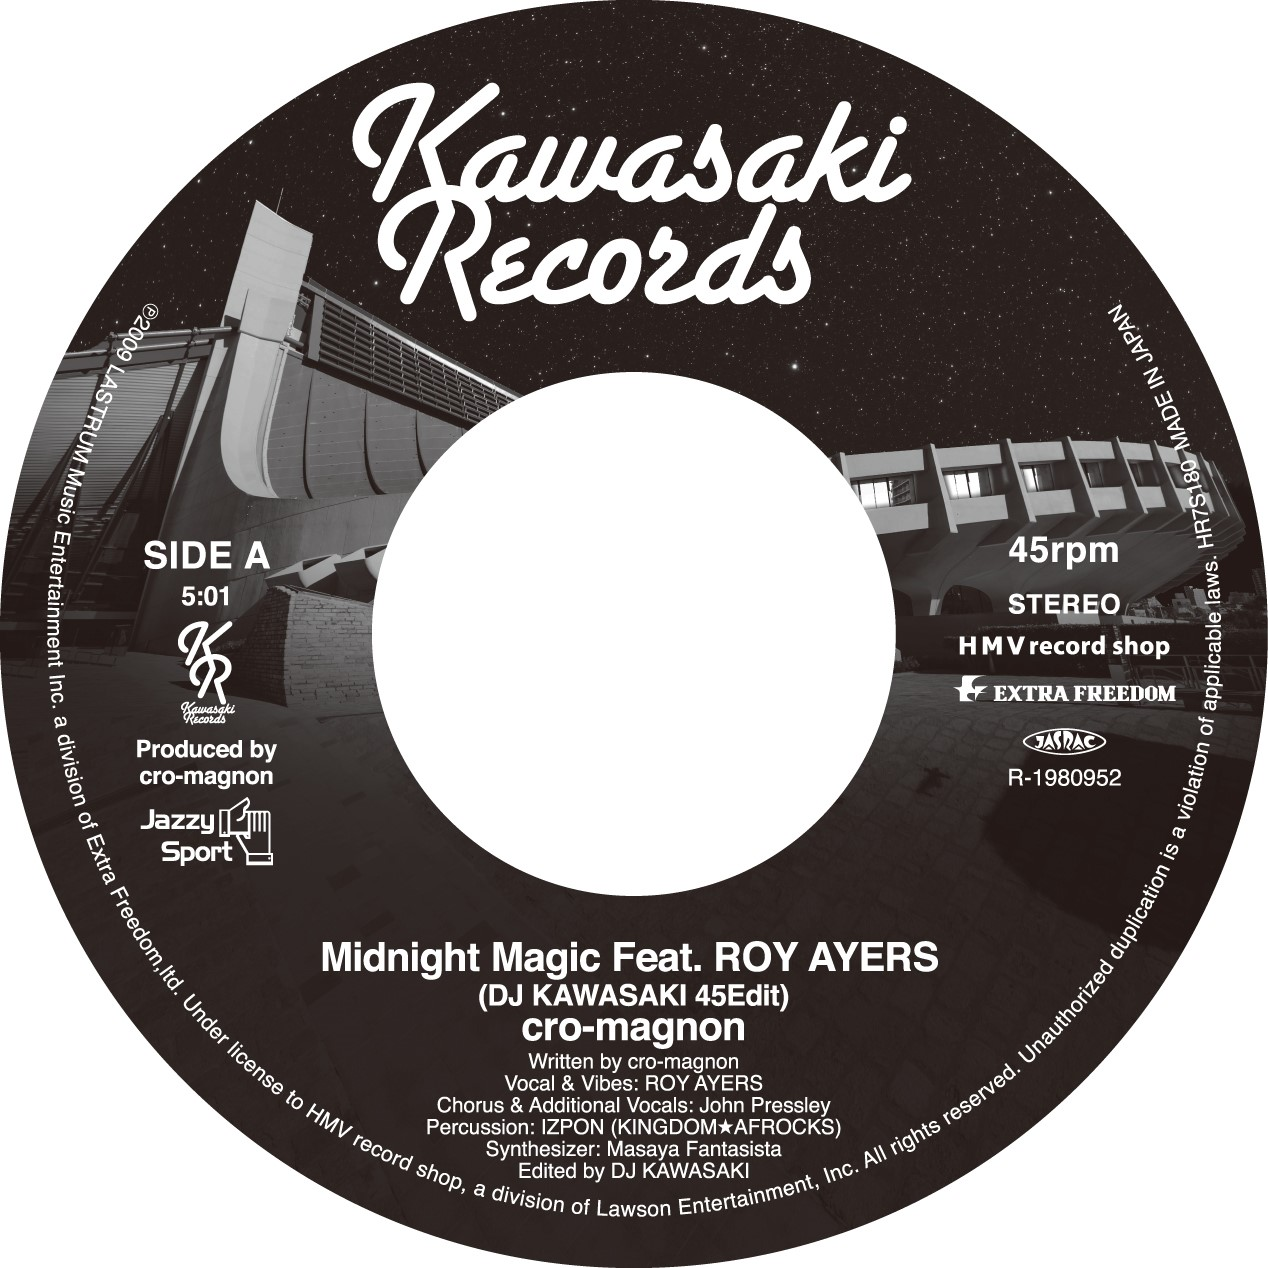 08-006 cro-magnon Midnight Magic Feat. ROY AYERS